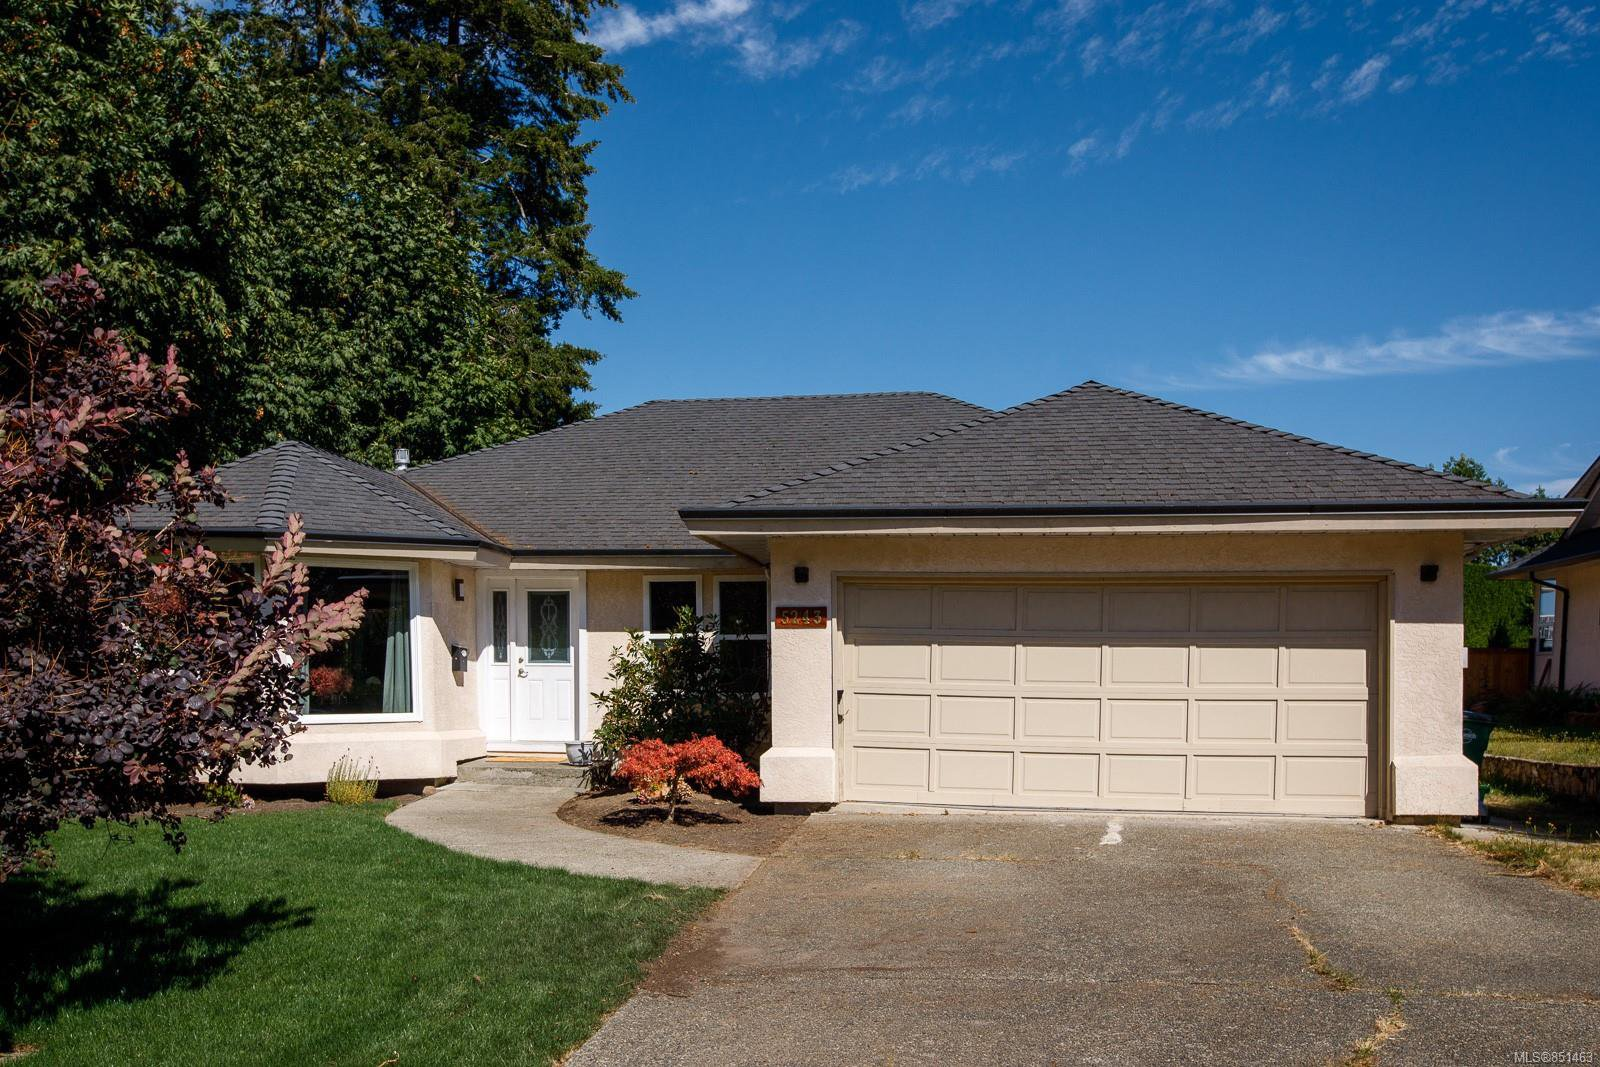 Main Photo: 5243 Worthington Rd in : SE Cordova Bay Single Family Detached for sale (Saanich East)  : MLS®# 851463